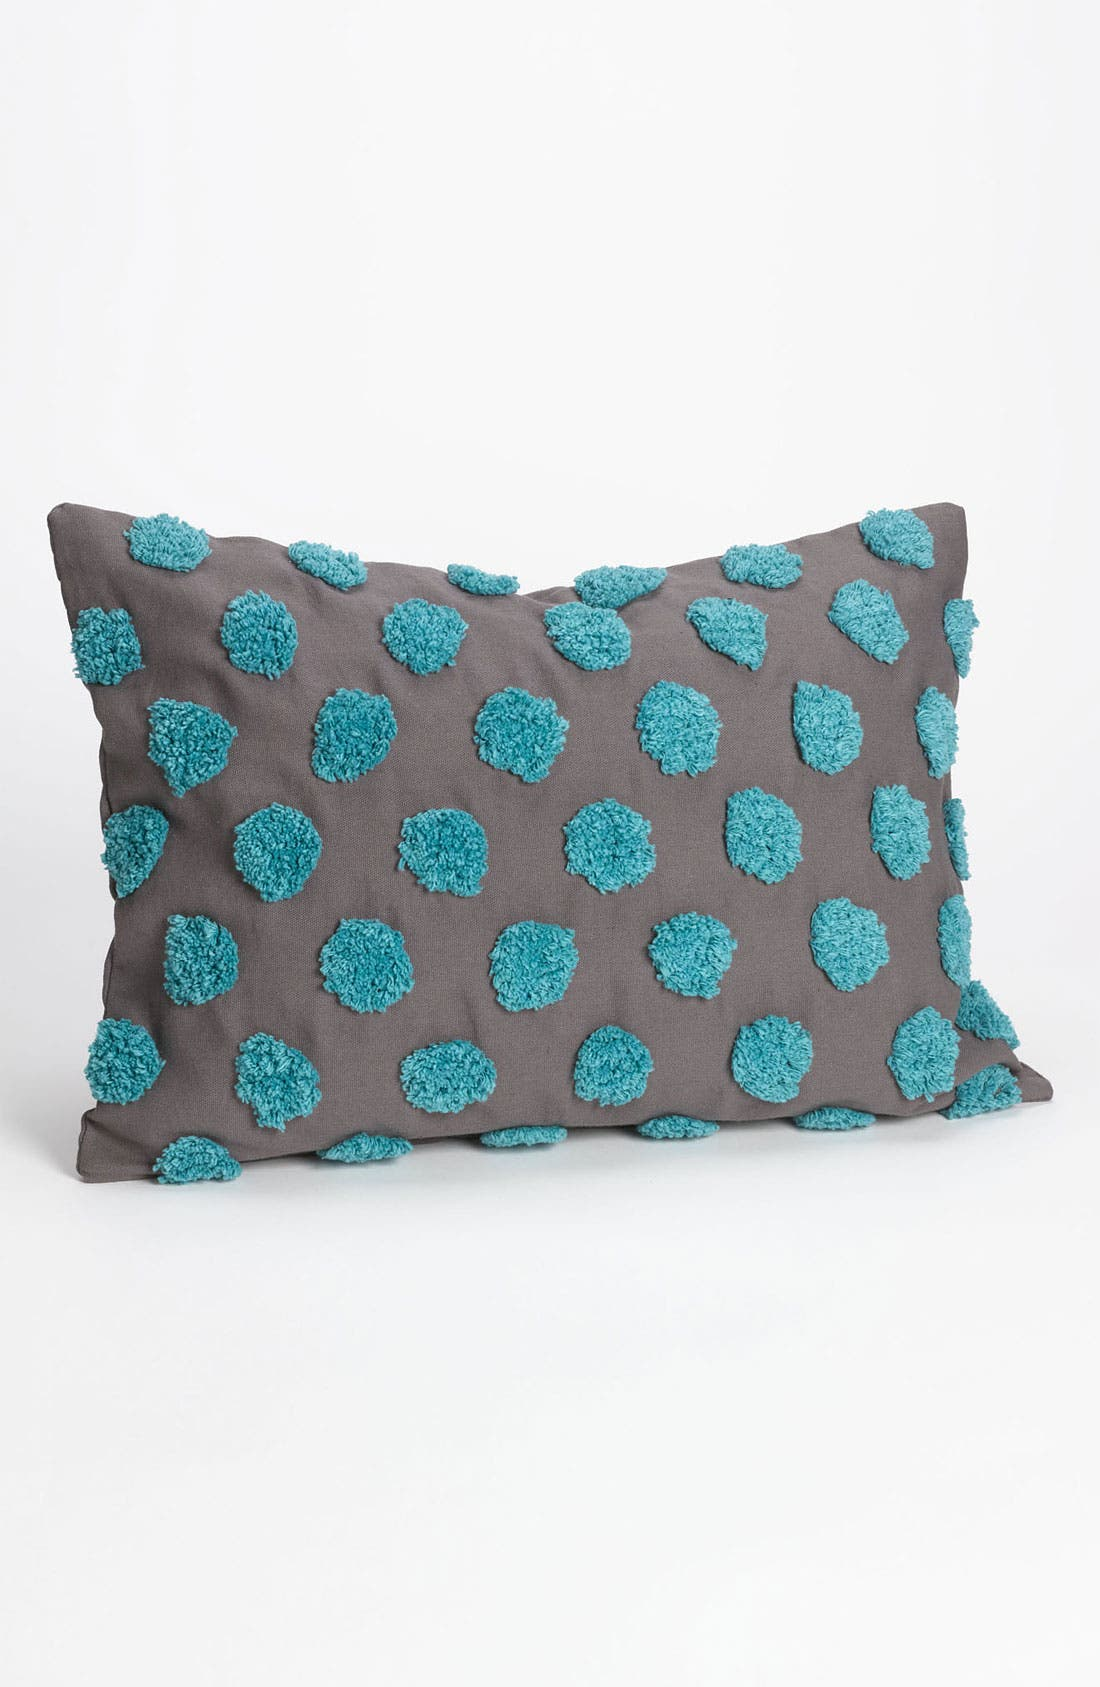 'Tufted Spots' Pillow Cover,                         Main,                         color, 020